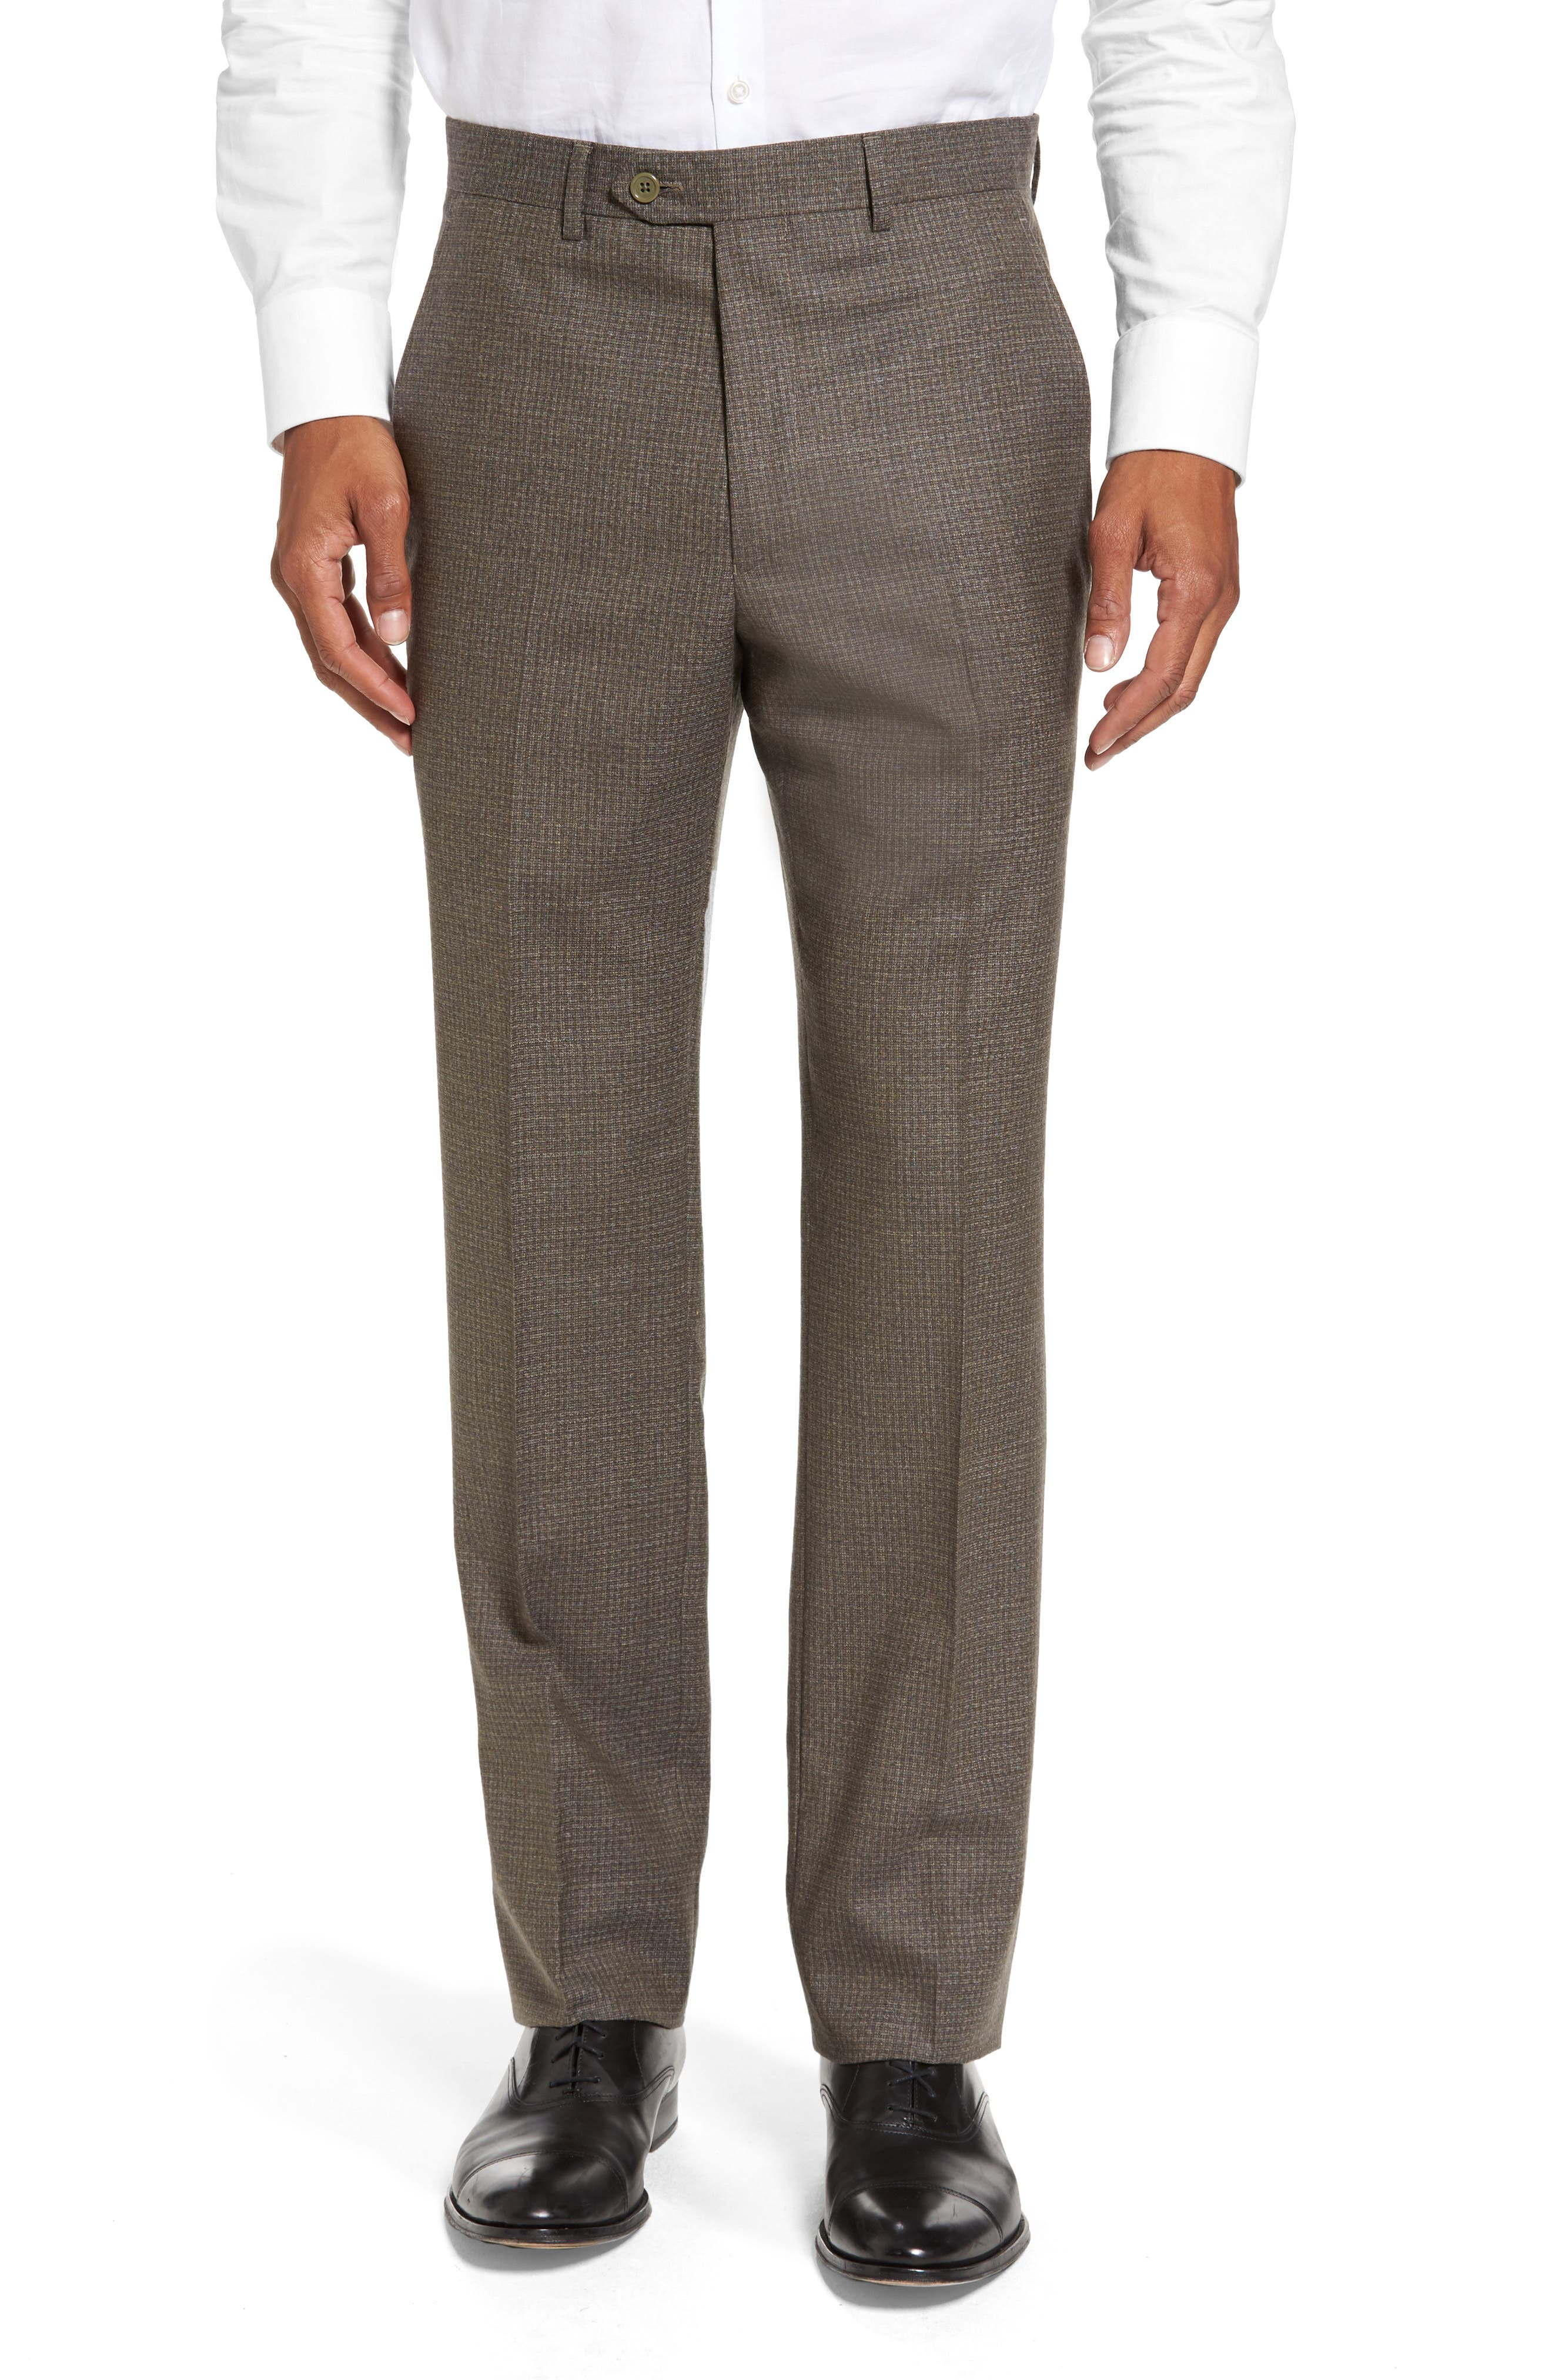 Romero Regular Fit Flat Front Trousers,                         Main,                         color, Taupe